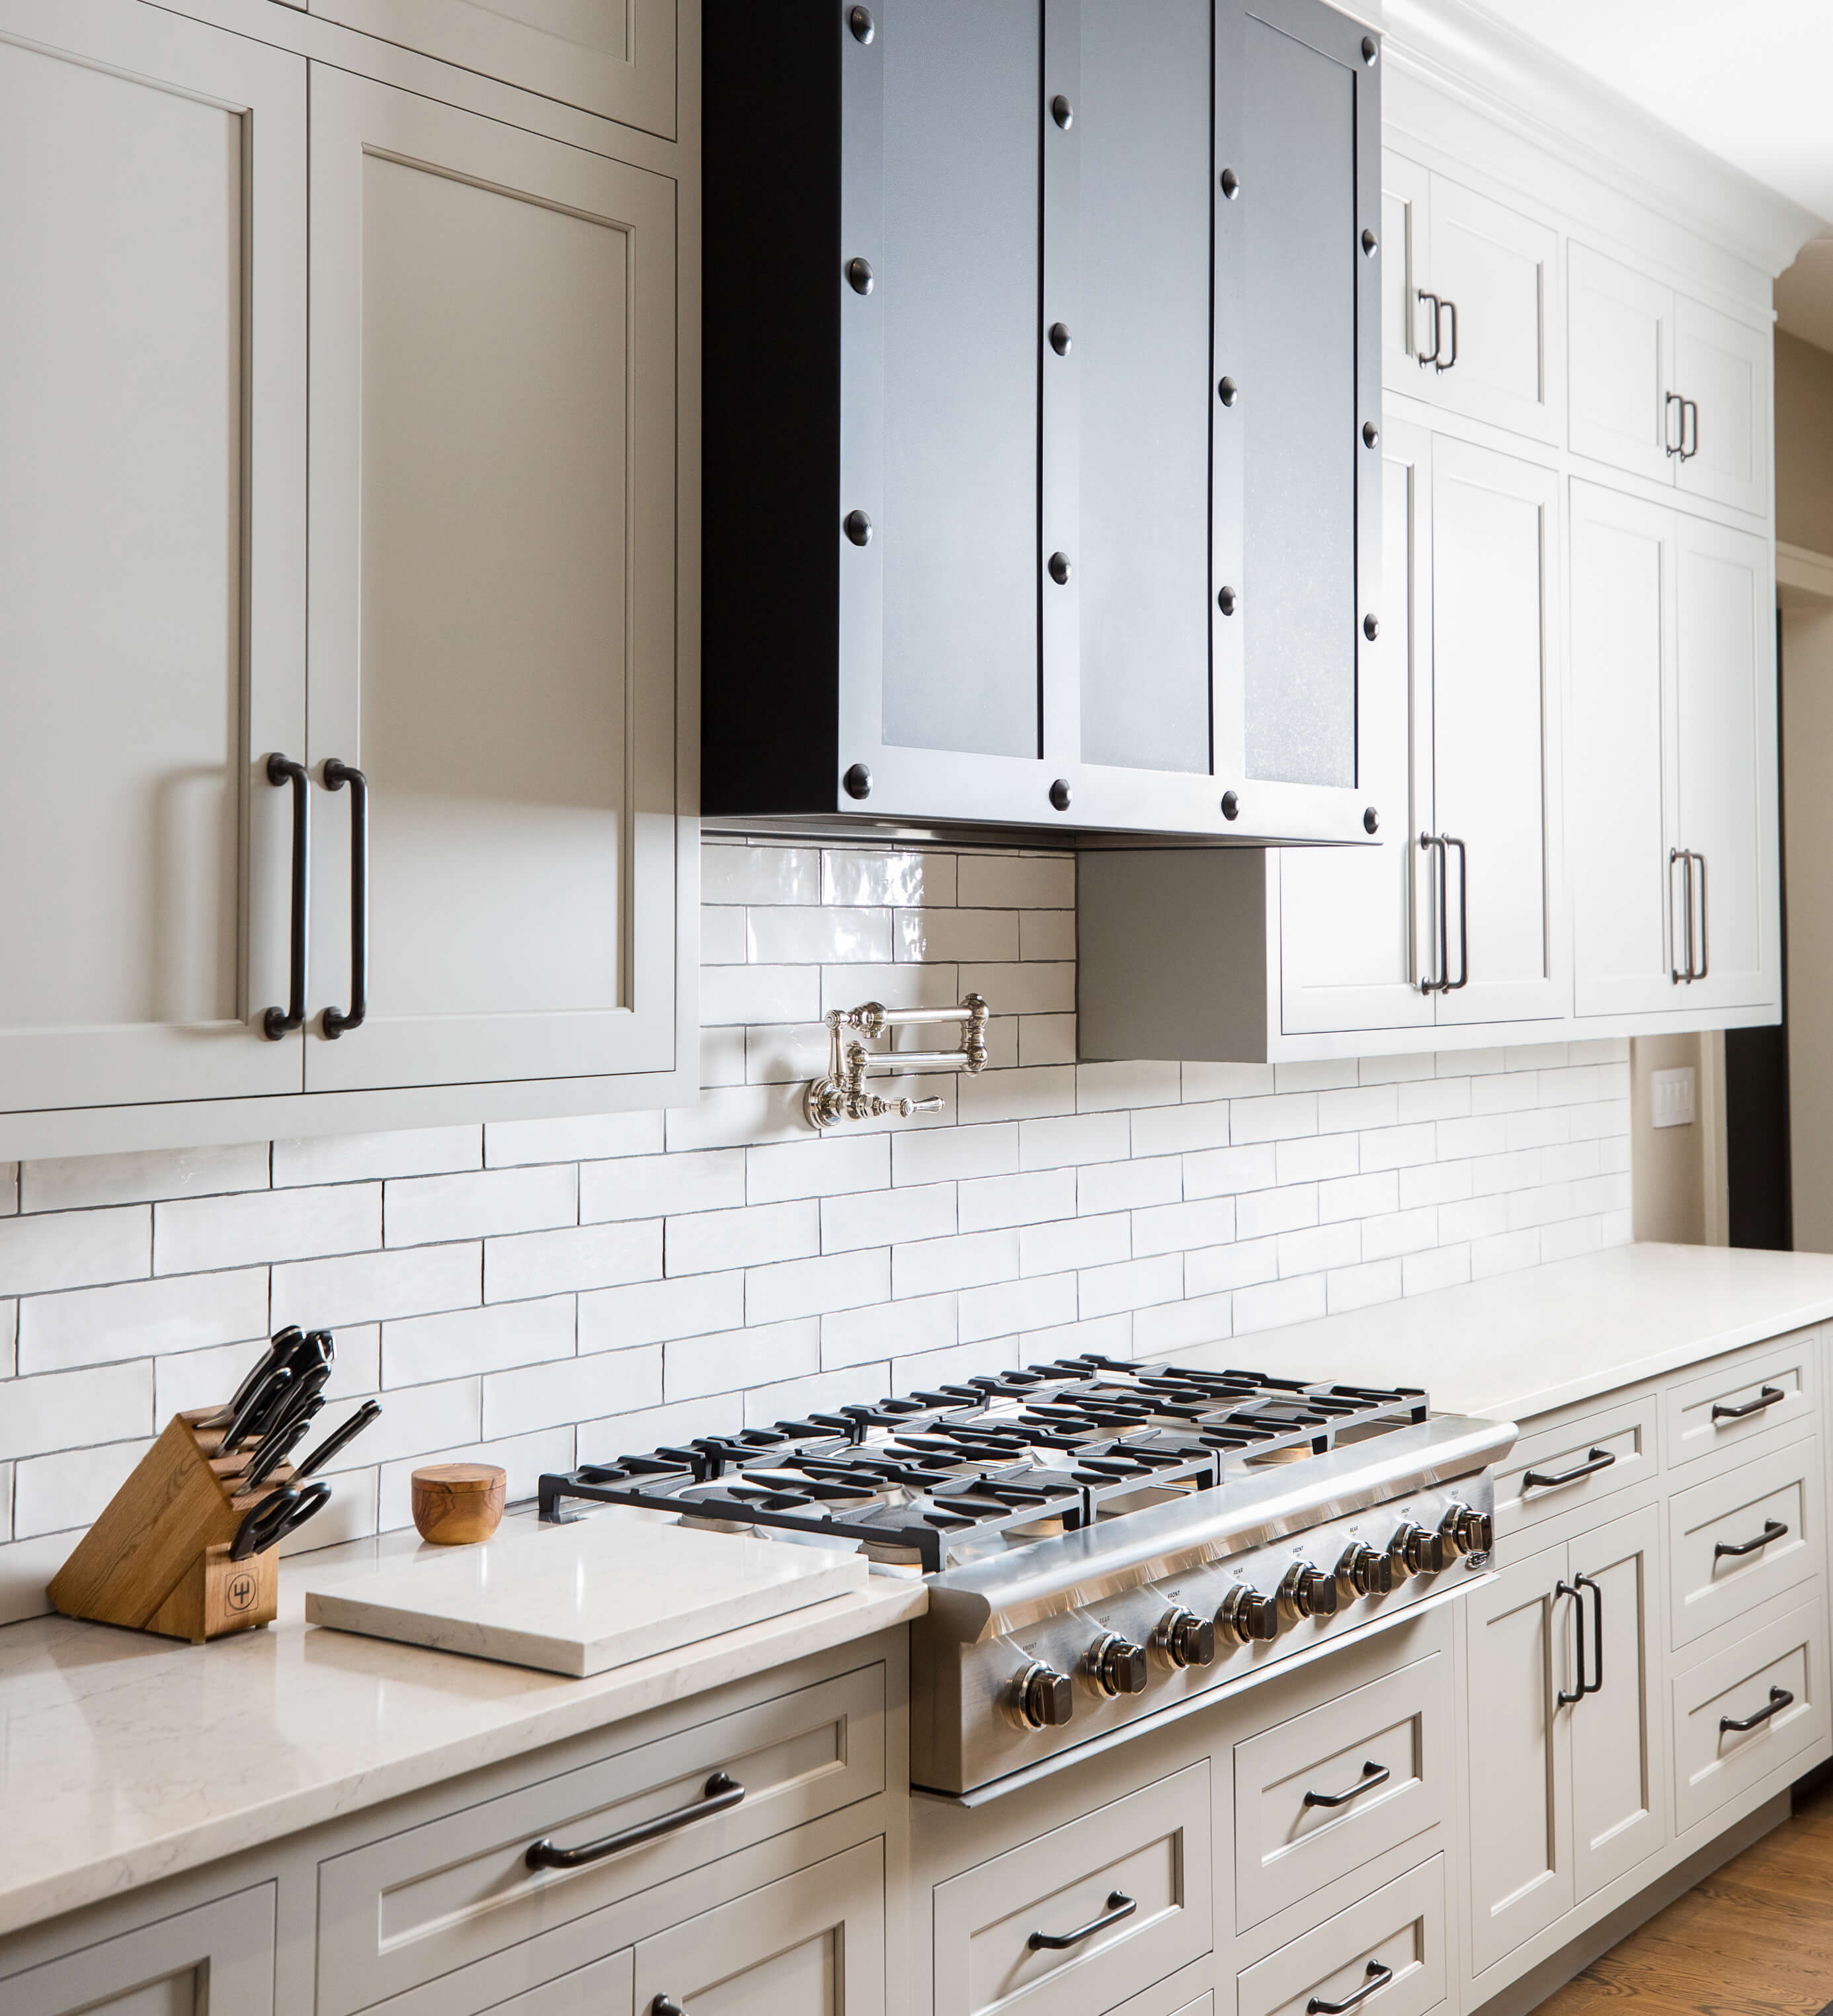 Dura Supreme kitchen design by Mariotti Building Products, Pennsylvania. Photography by Danielle Coons.